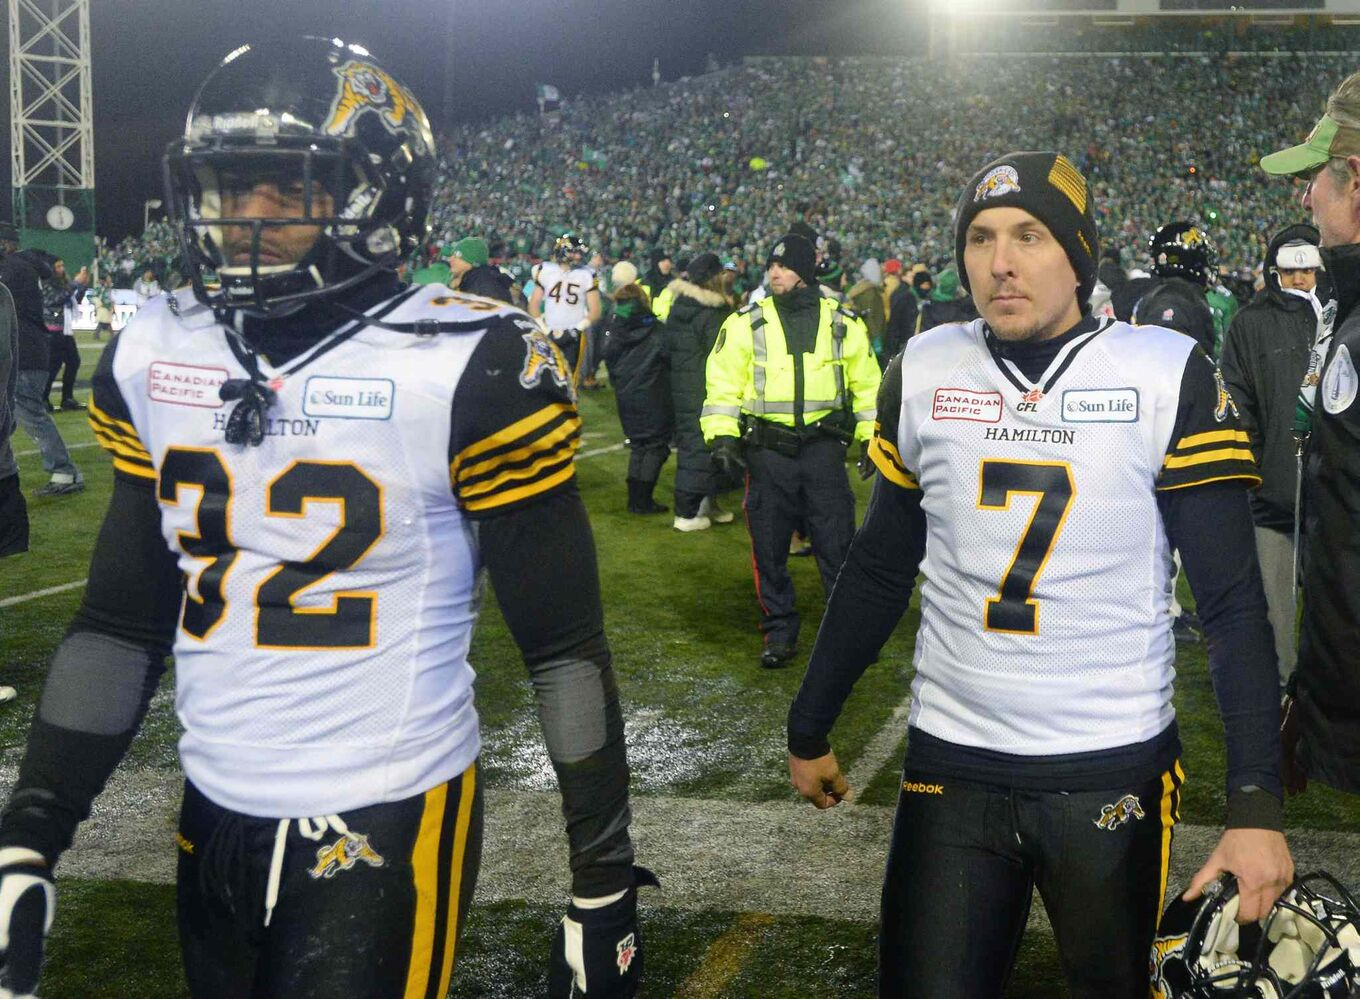 Hamilton Tiger-Cats running back C.J. Gable (left) and kicker Luca Congi walk off the field after losing to the Saskatchewan Roughriders.